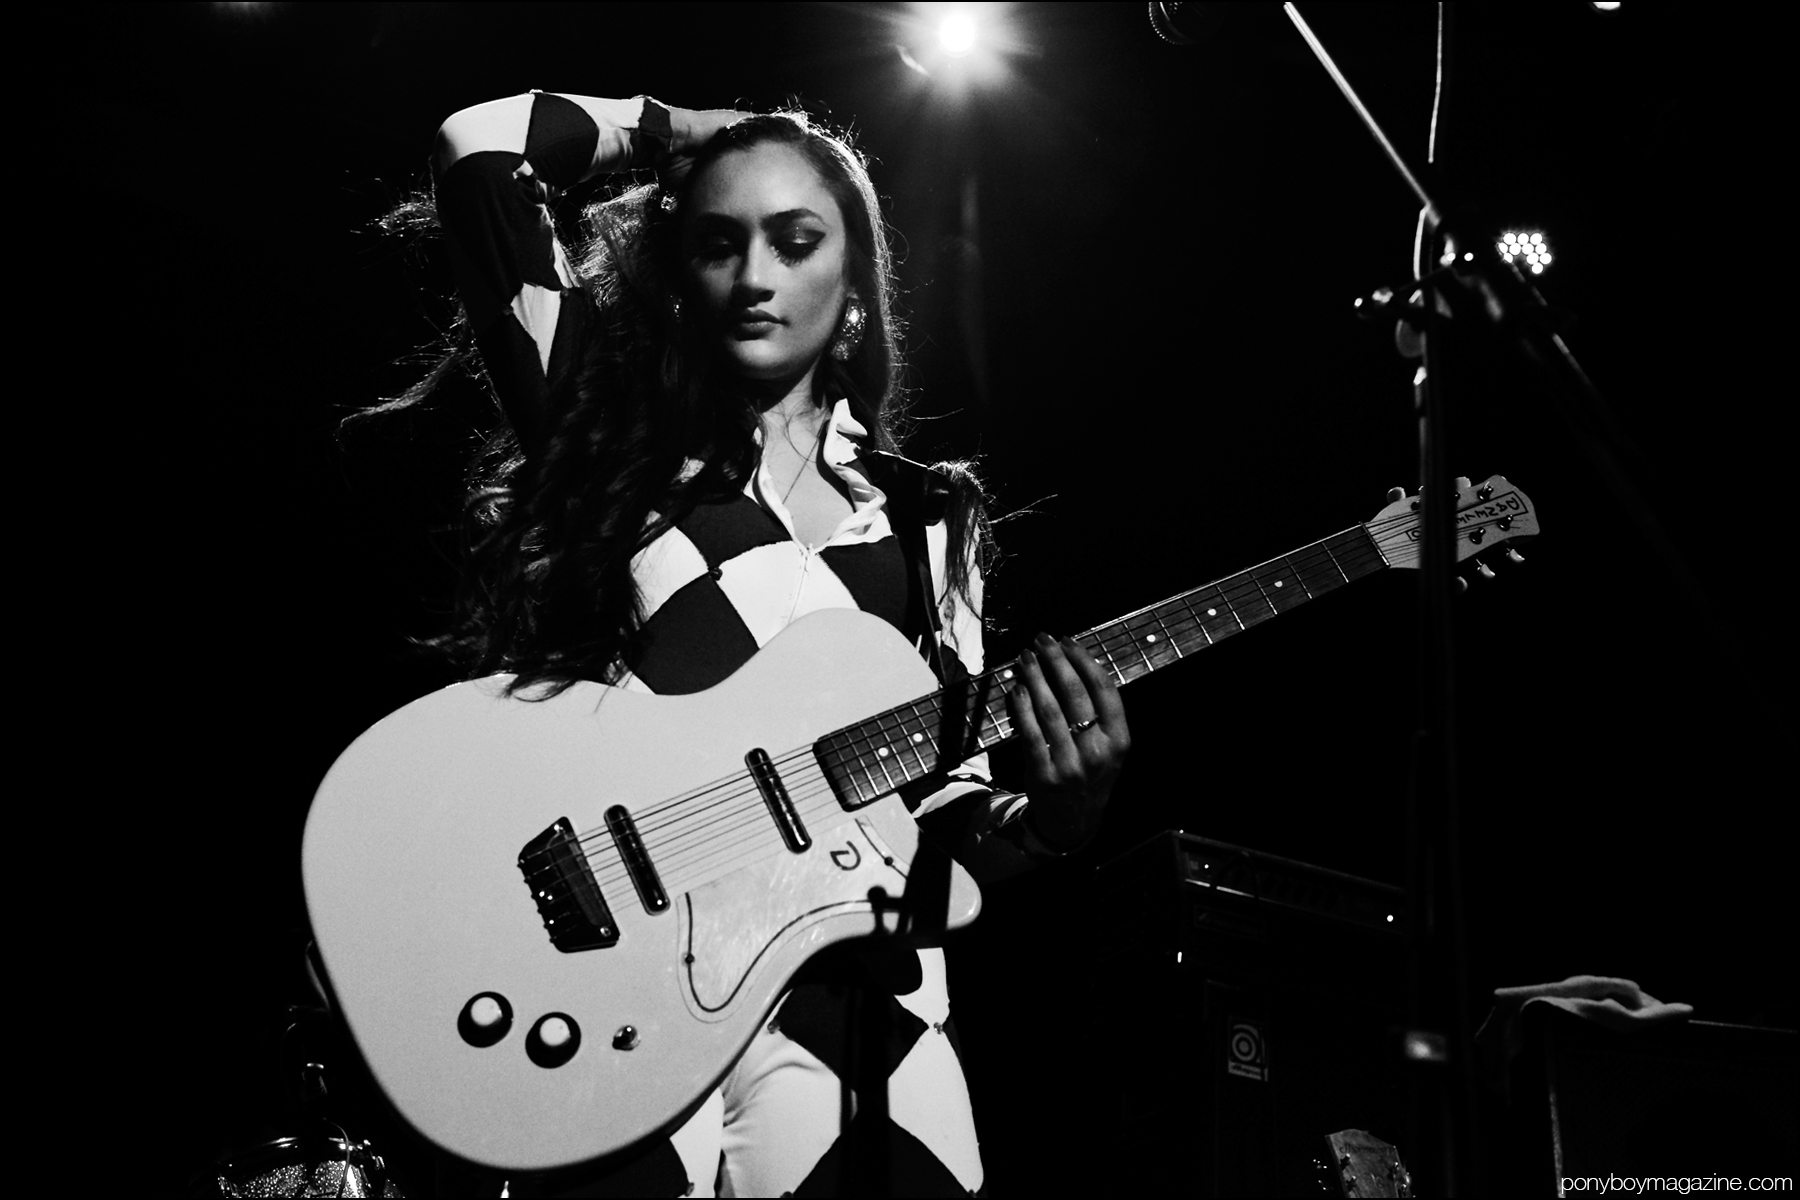 The beautiful Kitty Durham from Kitty, Daisy & Lewis. Photographed onstage at Bowery Ballroom in New York by Alexander Thompson for Ponyboy magazine.